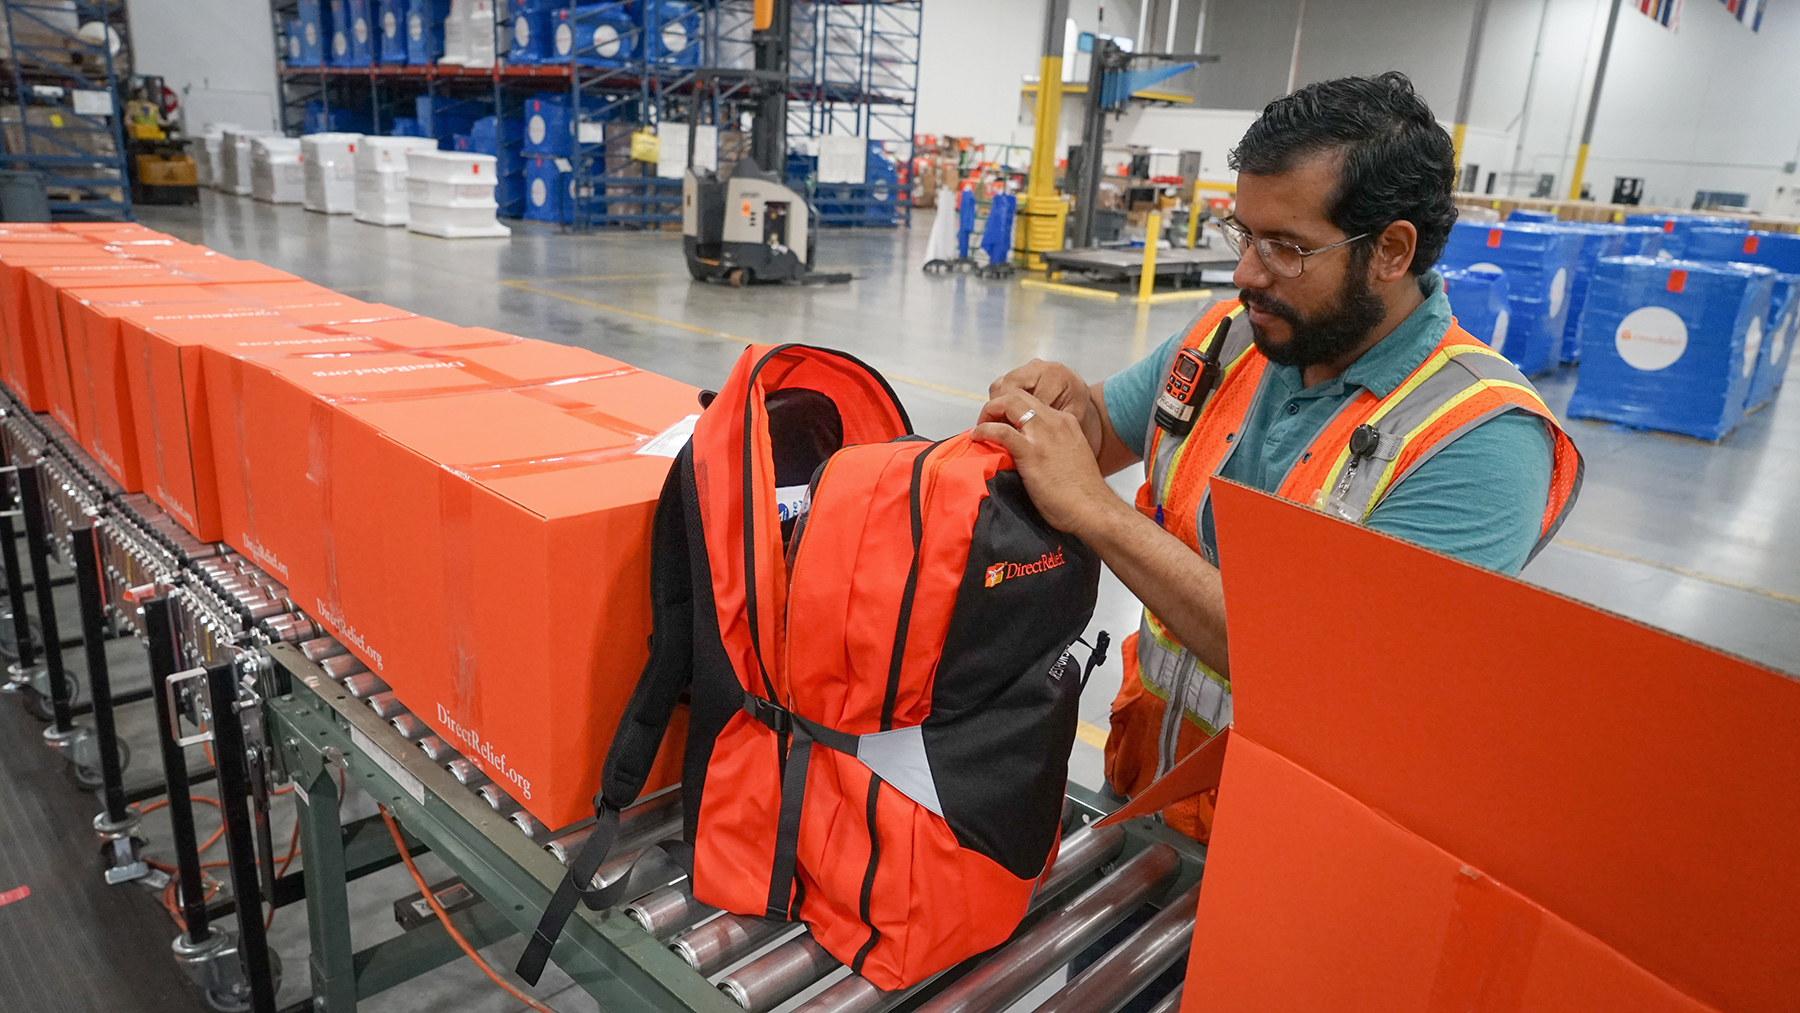 Shipments of medical aid, including Emergency Medical Backpacks, are packed at Direct Relief's warehouse on June 11, 2020. These backpacks, and other requested medical aid, including protective gear, make up 45 shipments departing to health centers across the United States that have been impacted by recent protests. (Lara Cooper/Direct Relief)